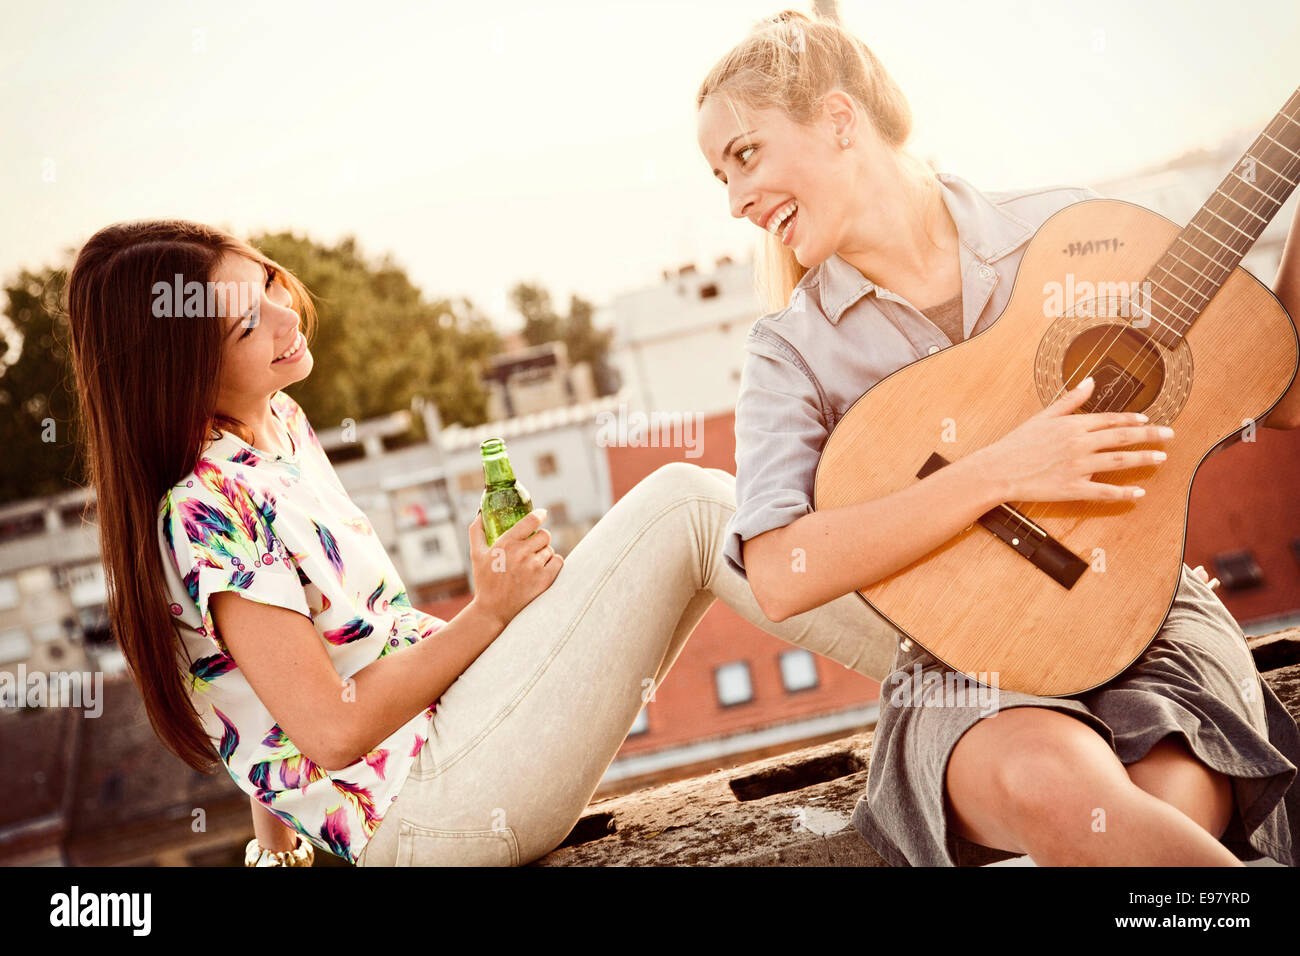 Young woman with girlfriend playing guitar at rooftop party - Stock Image